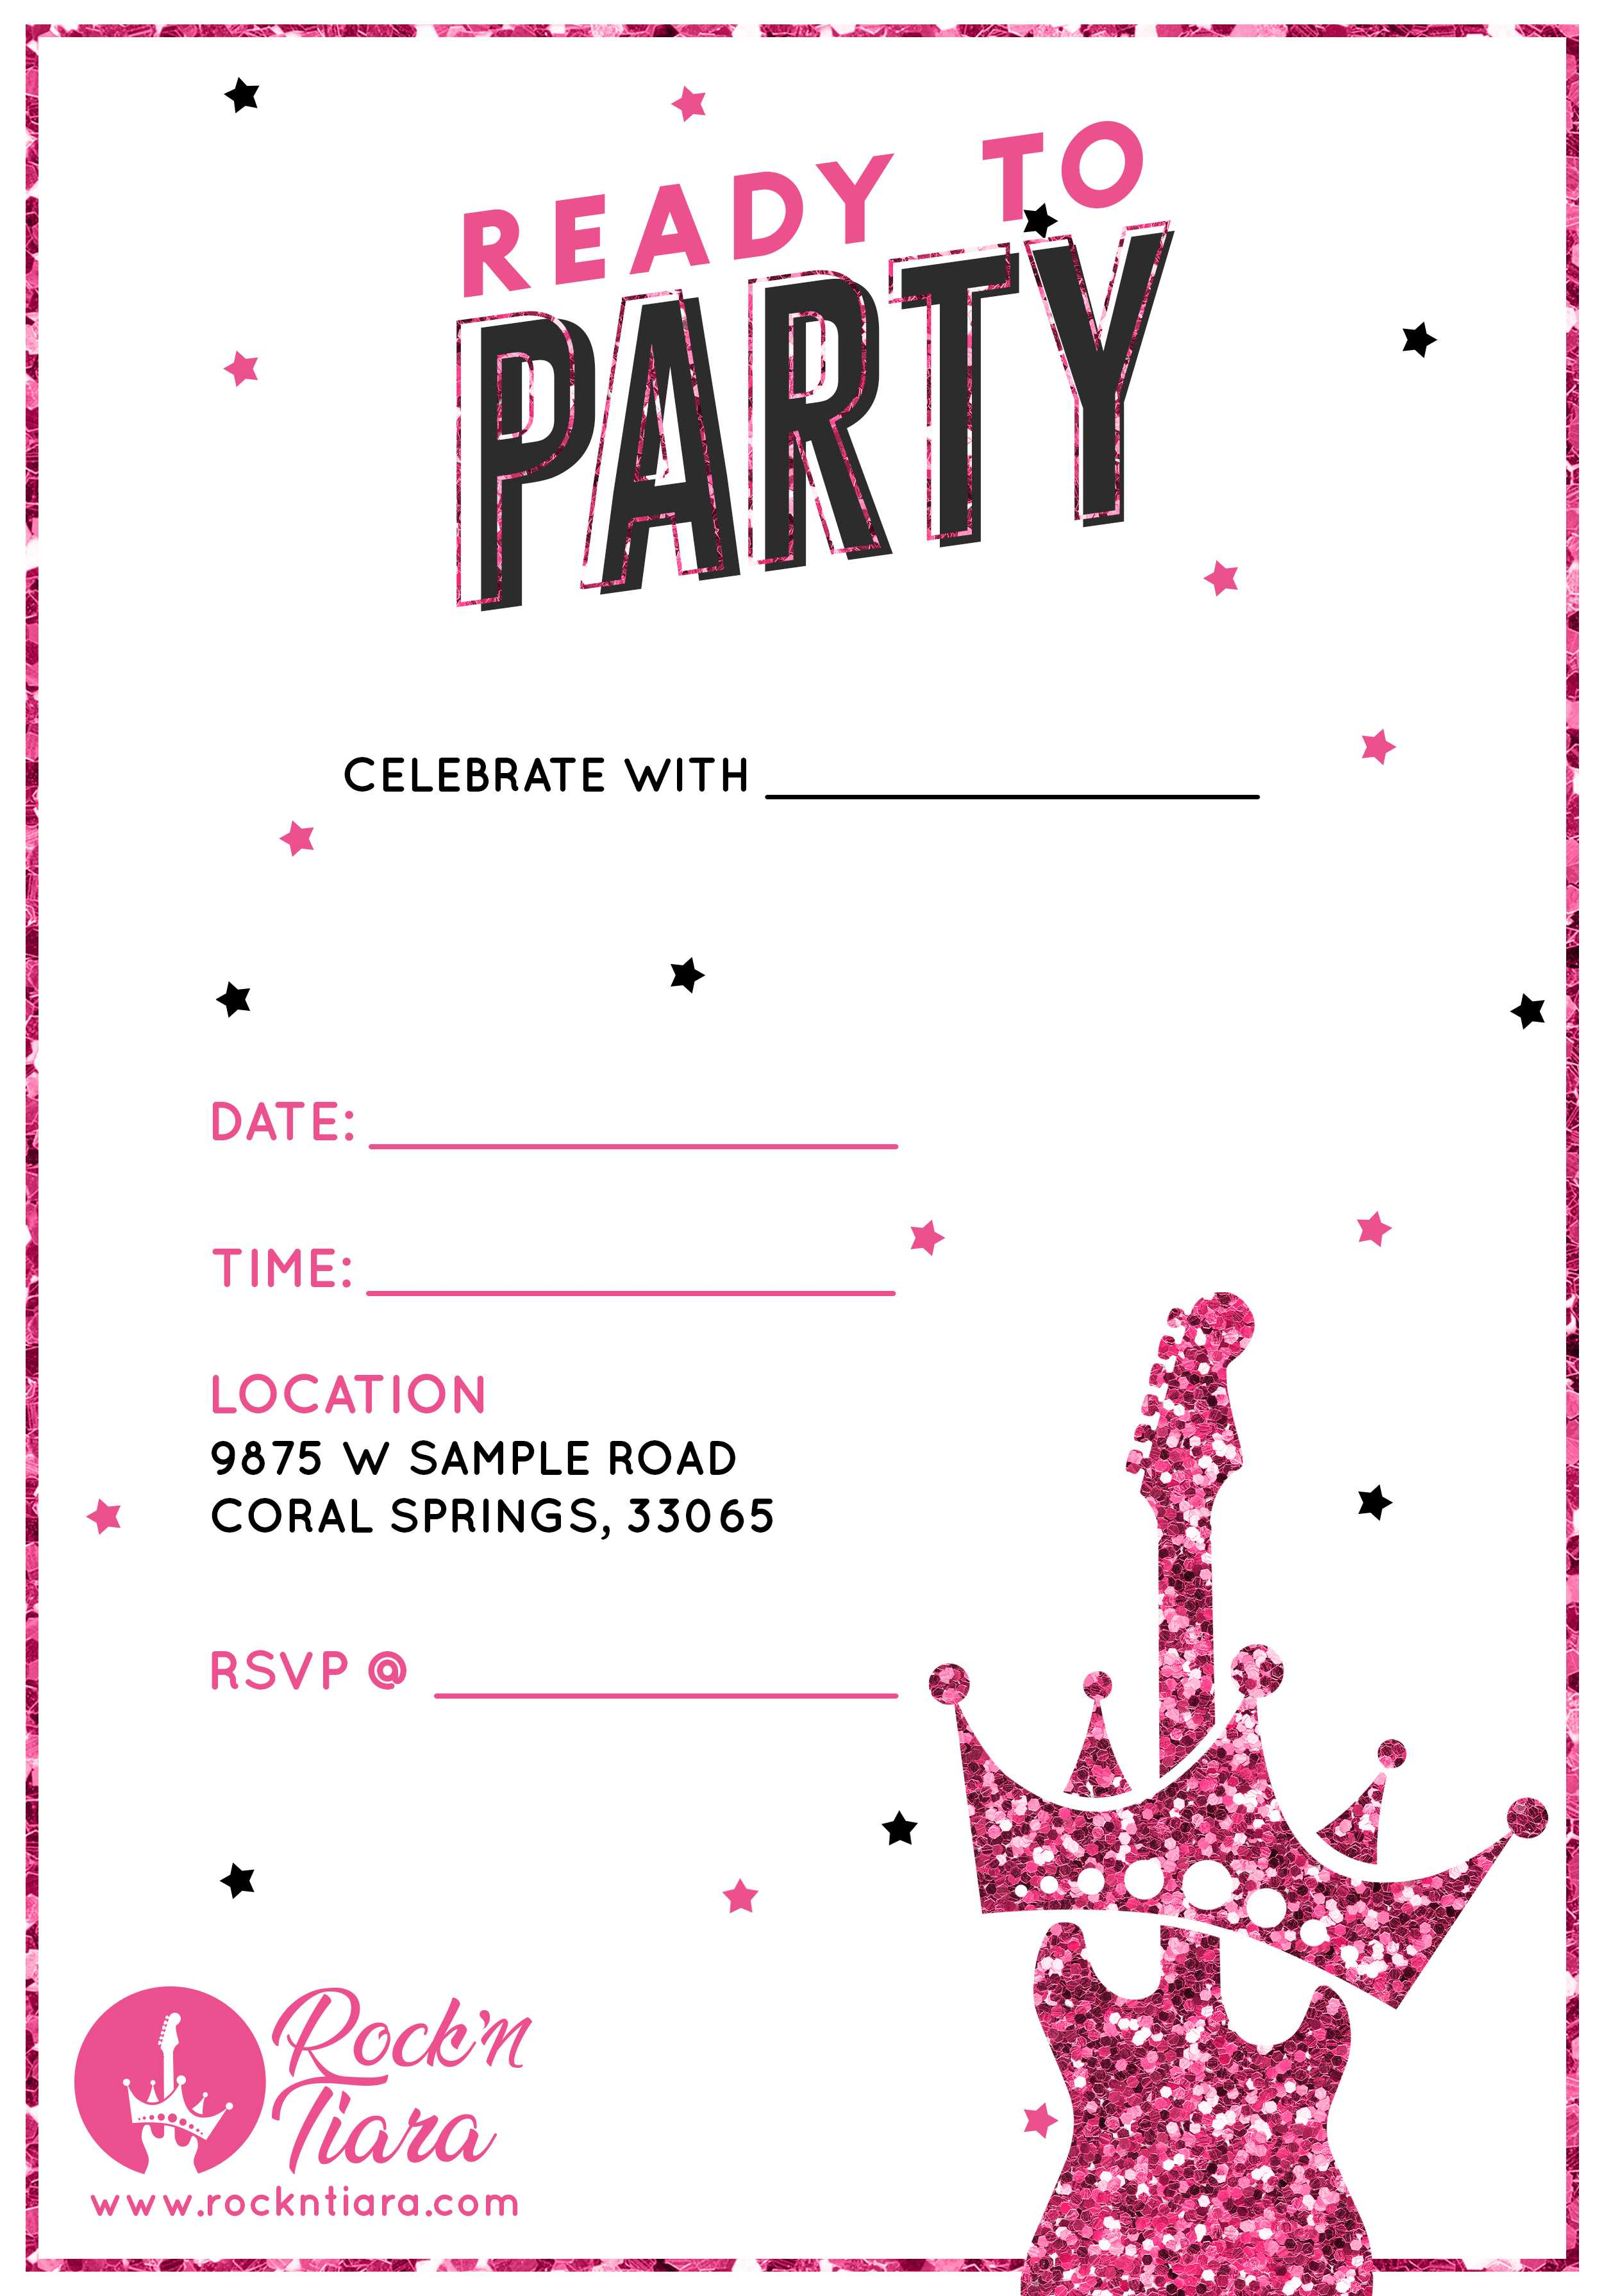 Birthday Party Invitation | Custom Design from Rock'N Tiara